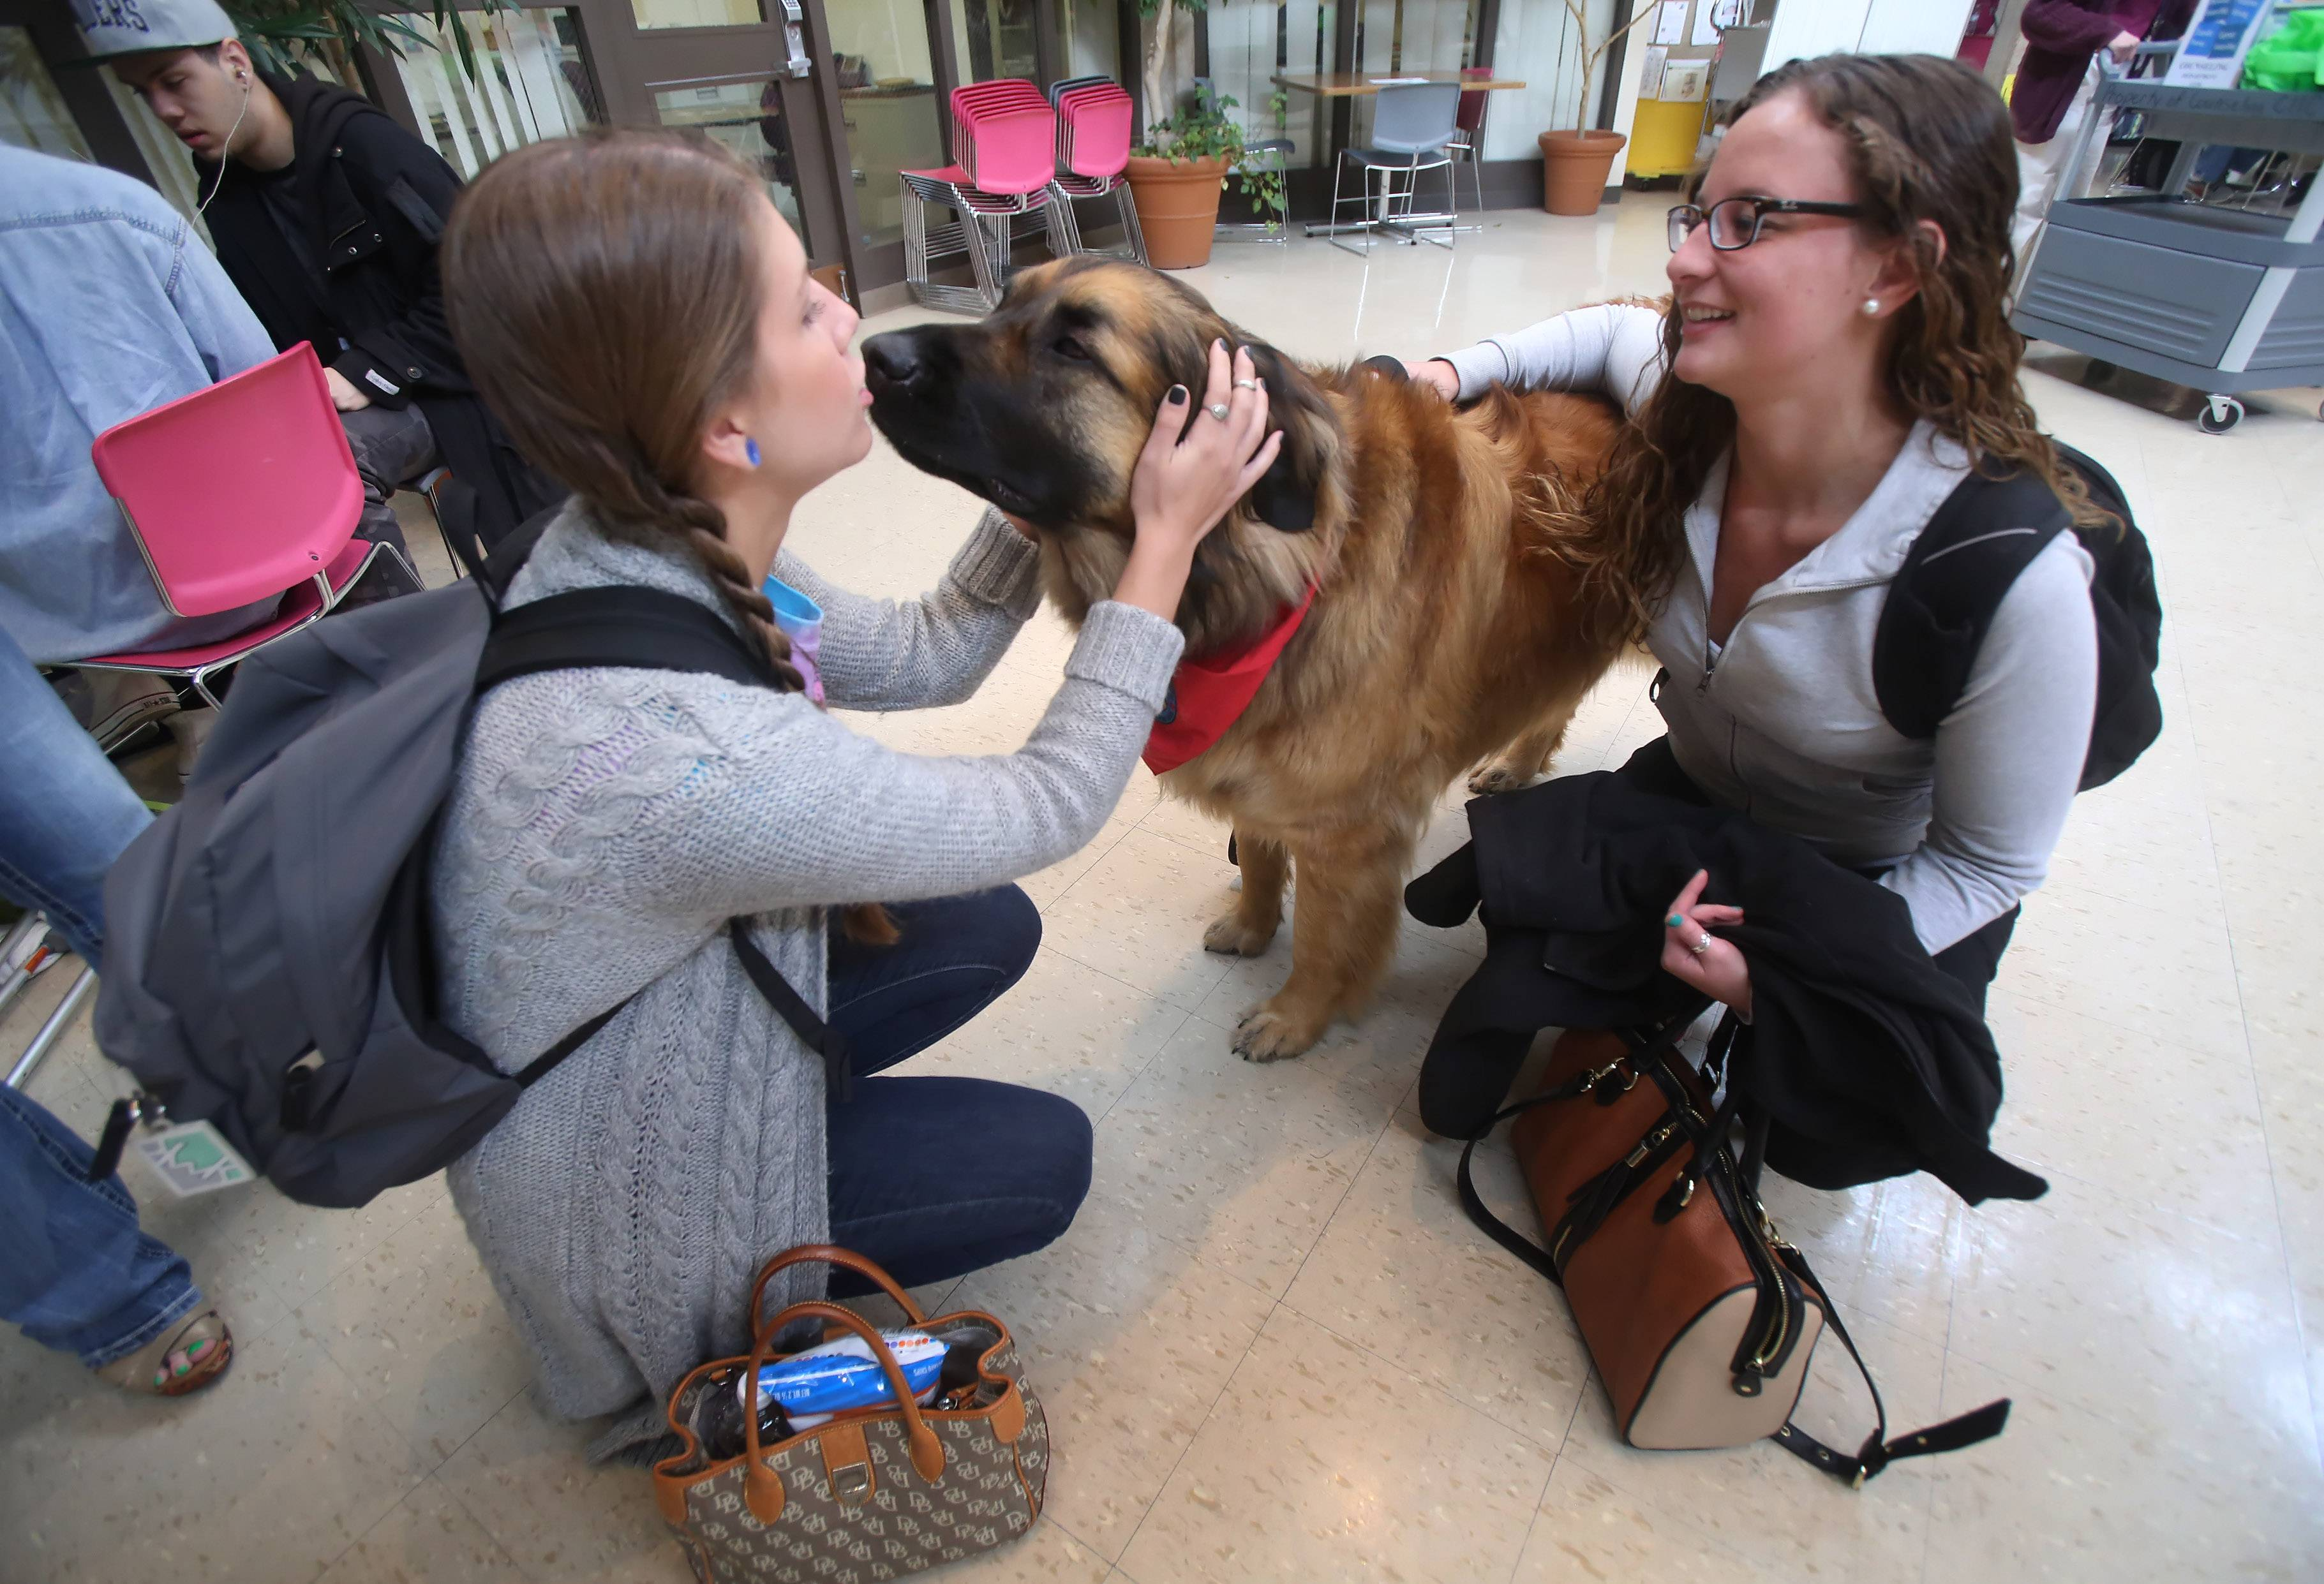 College of Lake County students Julia Metzger, left, and Jessica Gordon, both of Mundelein, pet and kiss Ebytes, a Leonberger, one of the Therapy Dogs International canines greeting students this week at the Grayslake campus. The dogs were on hand to help students de-stress during finals week.